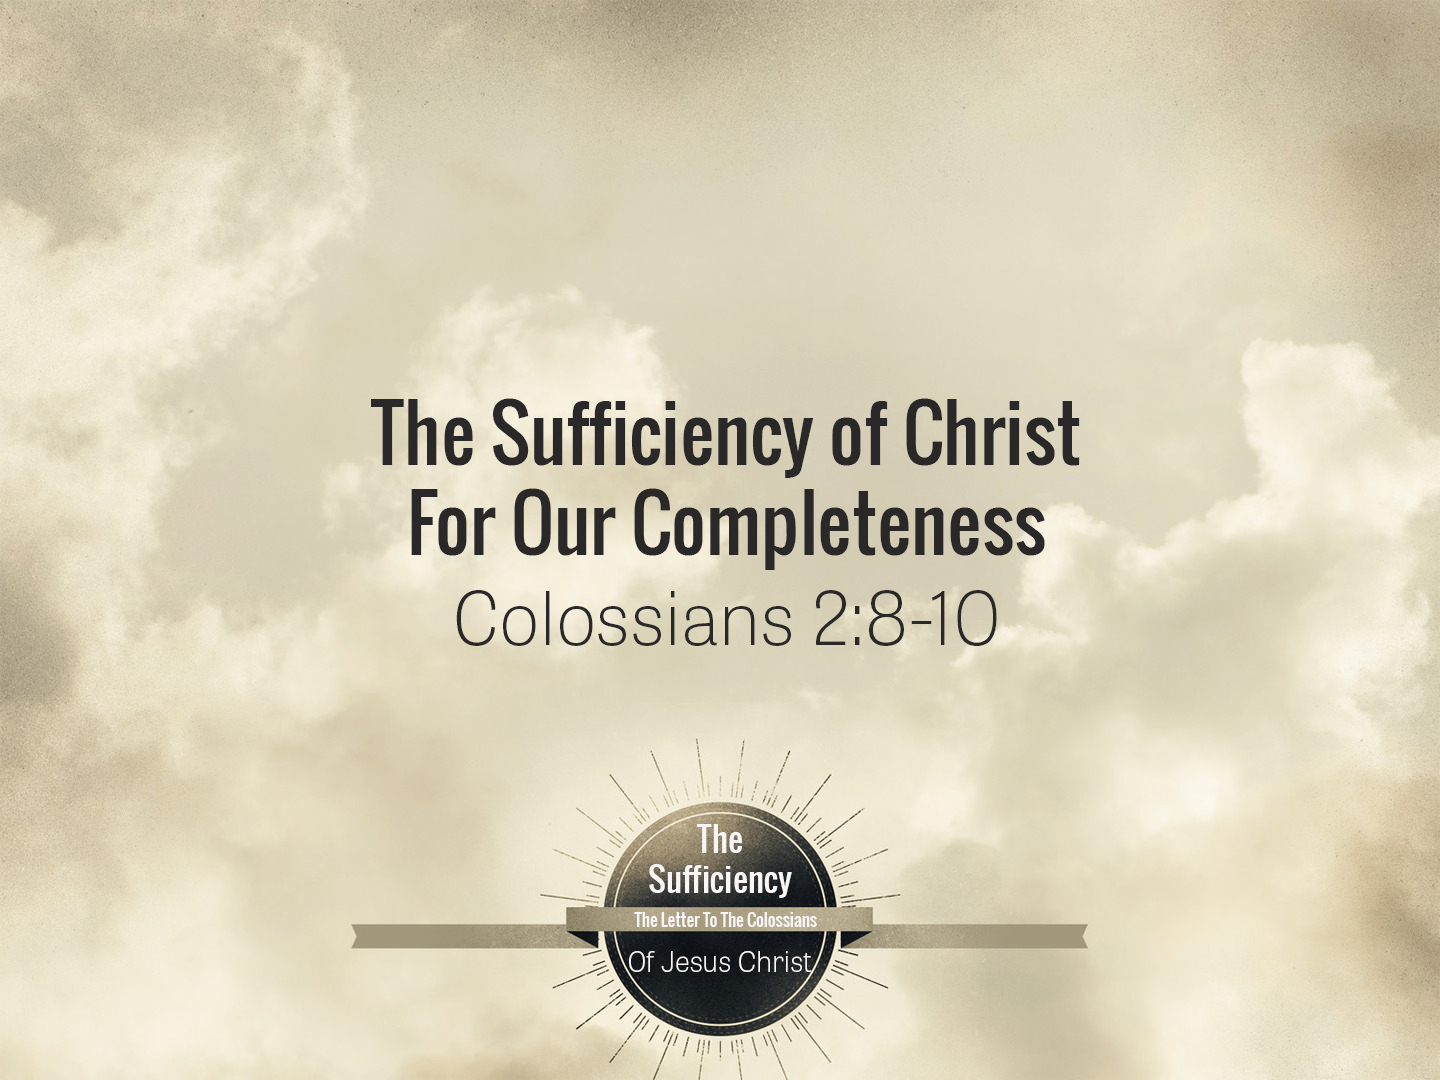 Colossians 2v8-10 The Sufficiency of Christ For Our Completeness.